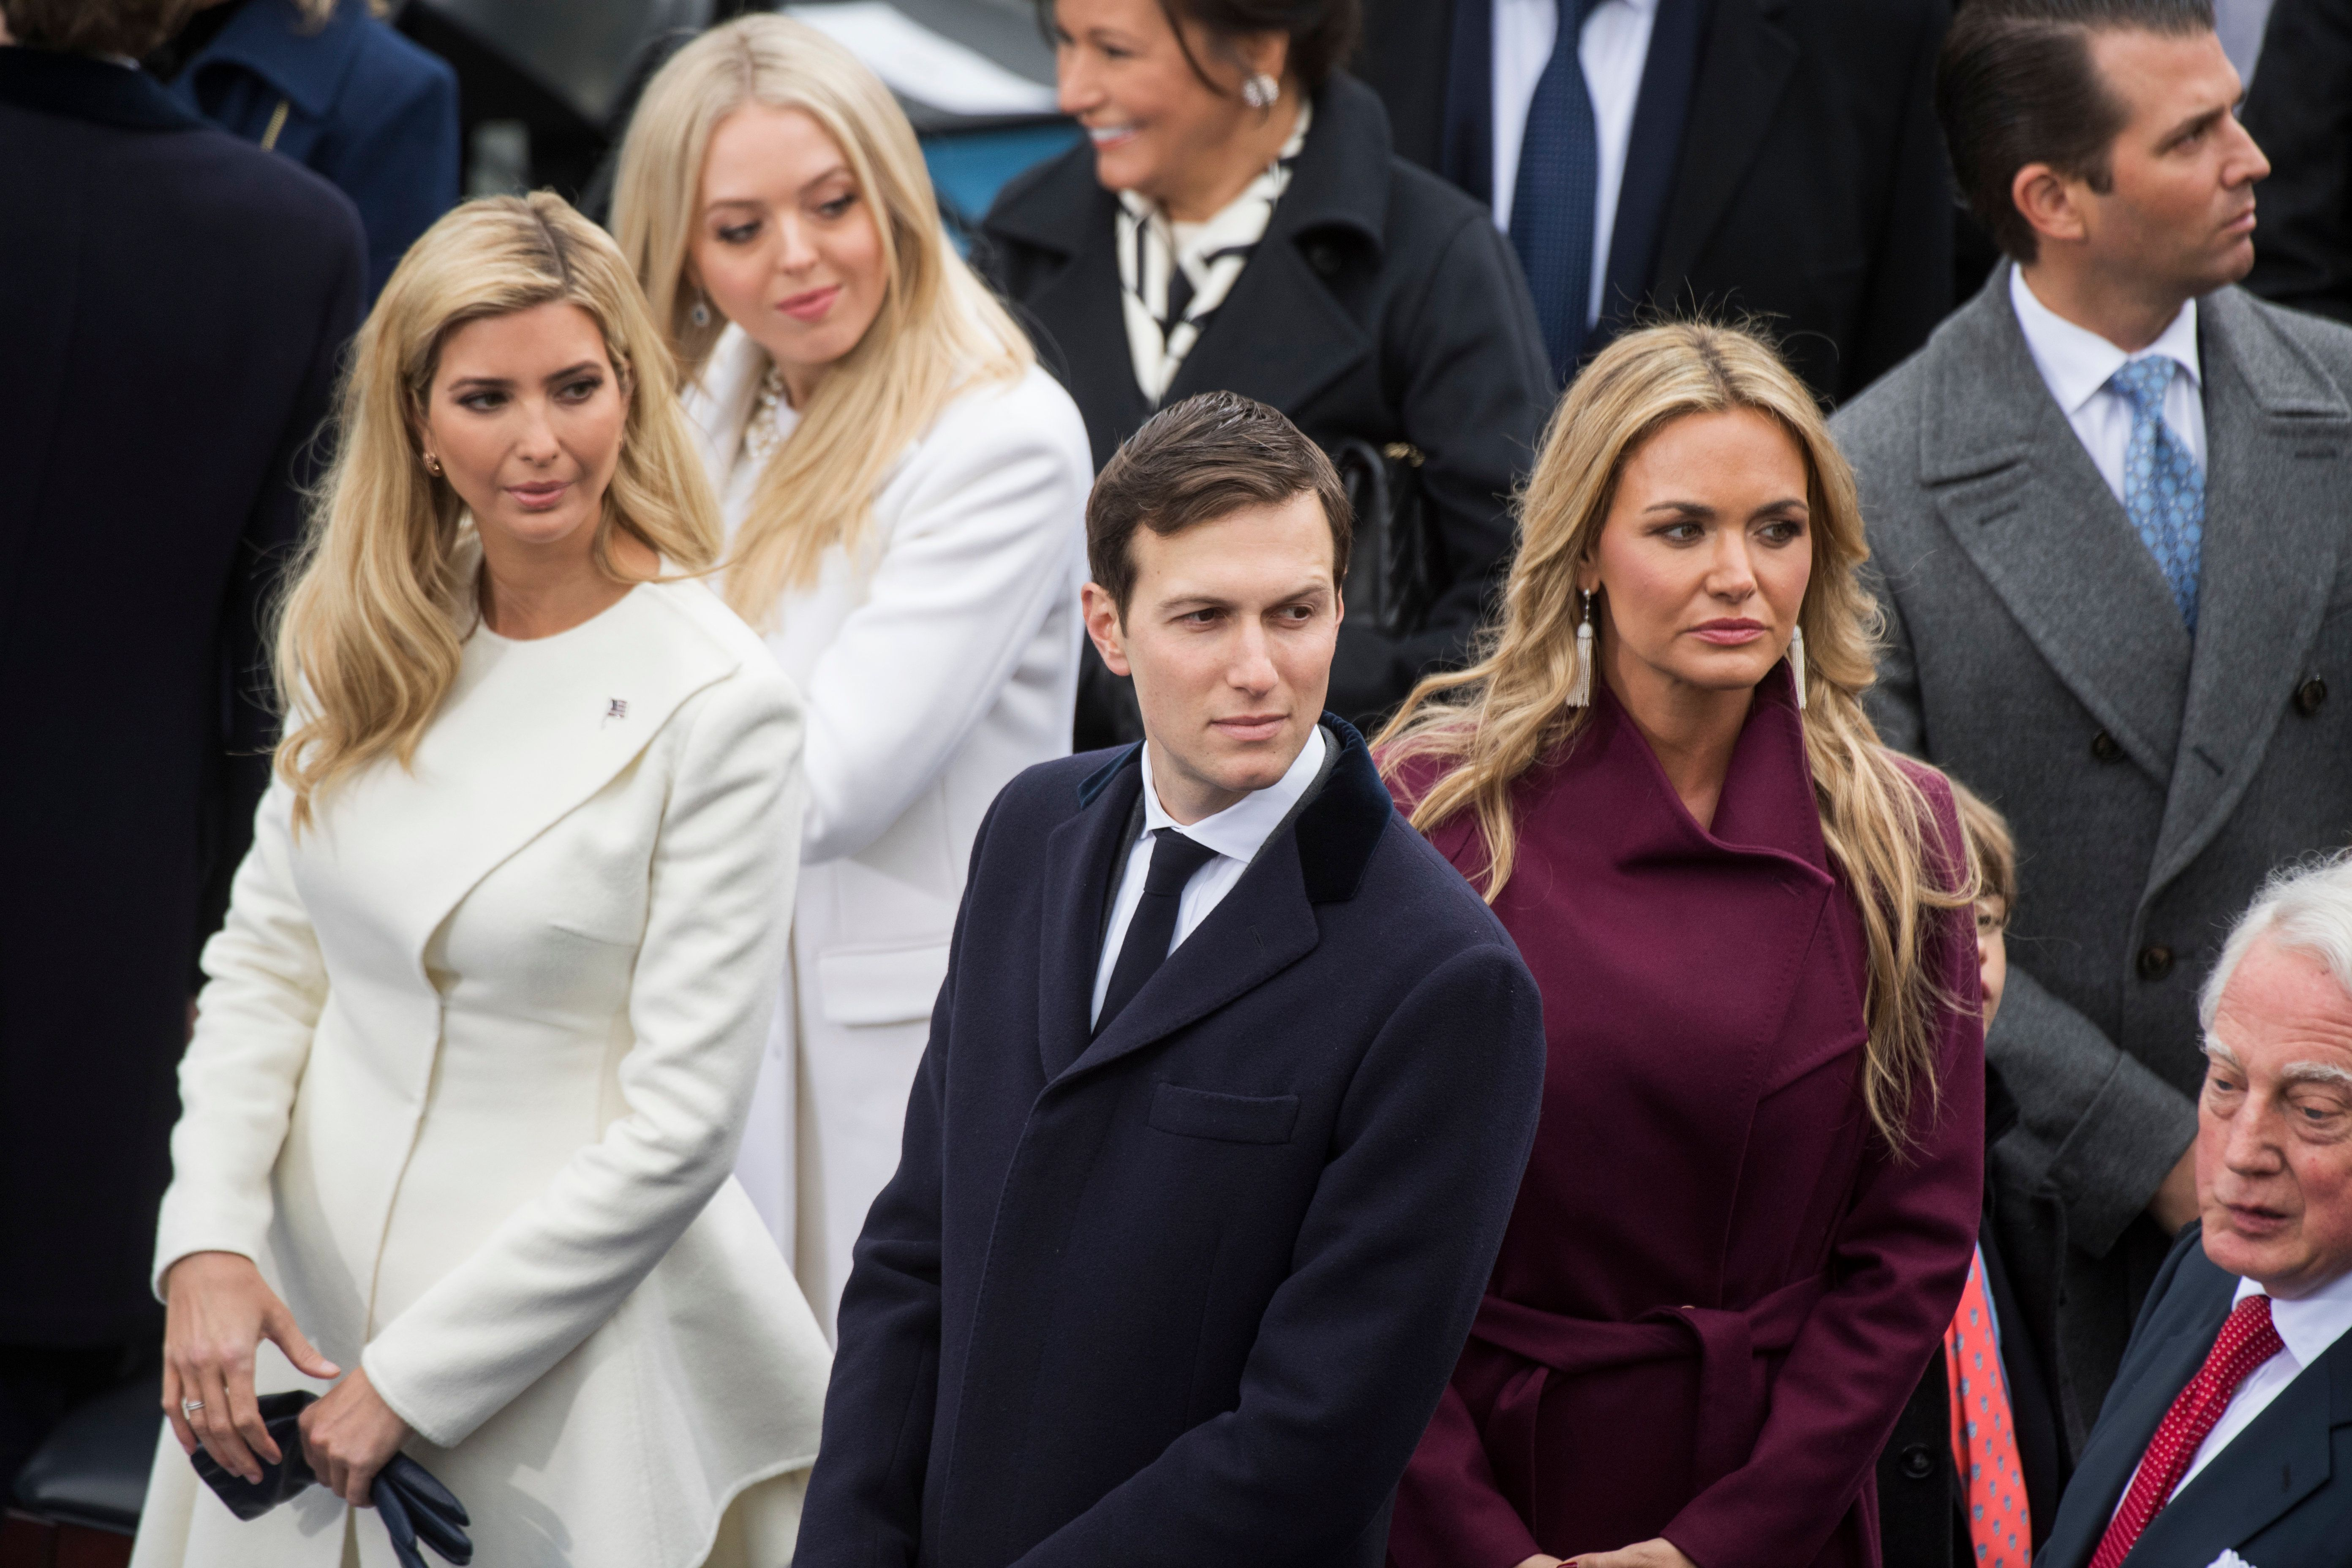 UNITED STATES - JANUARY 20: Jared Kushner, husband of Ivanka Trump, left, waits for the arrival of his father-in-law Donald J. Trump, on the West Front of the Capitol before Trump was sworn in as the 45th President of the United States, January 20, 2017. (Photo By Tom Williams/CQ Roll Call)